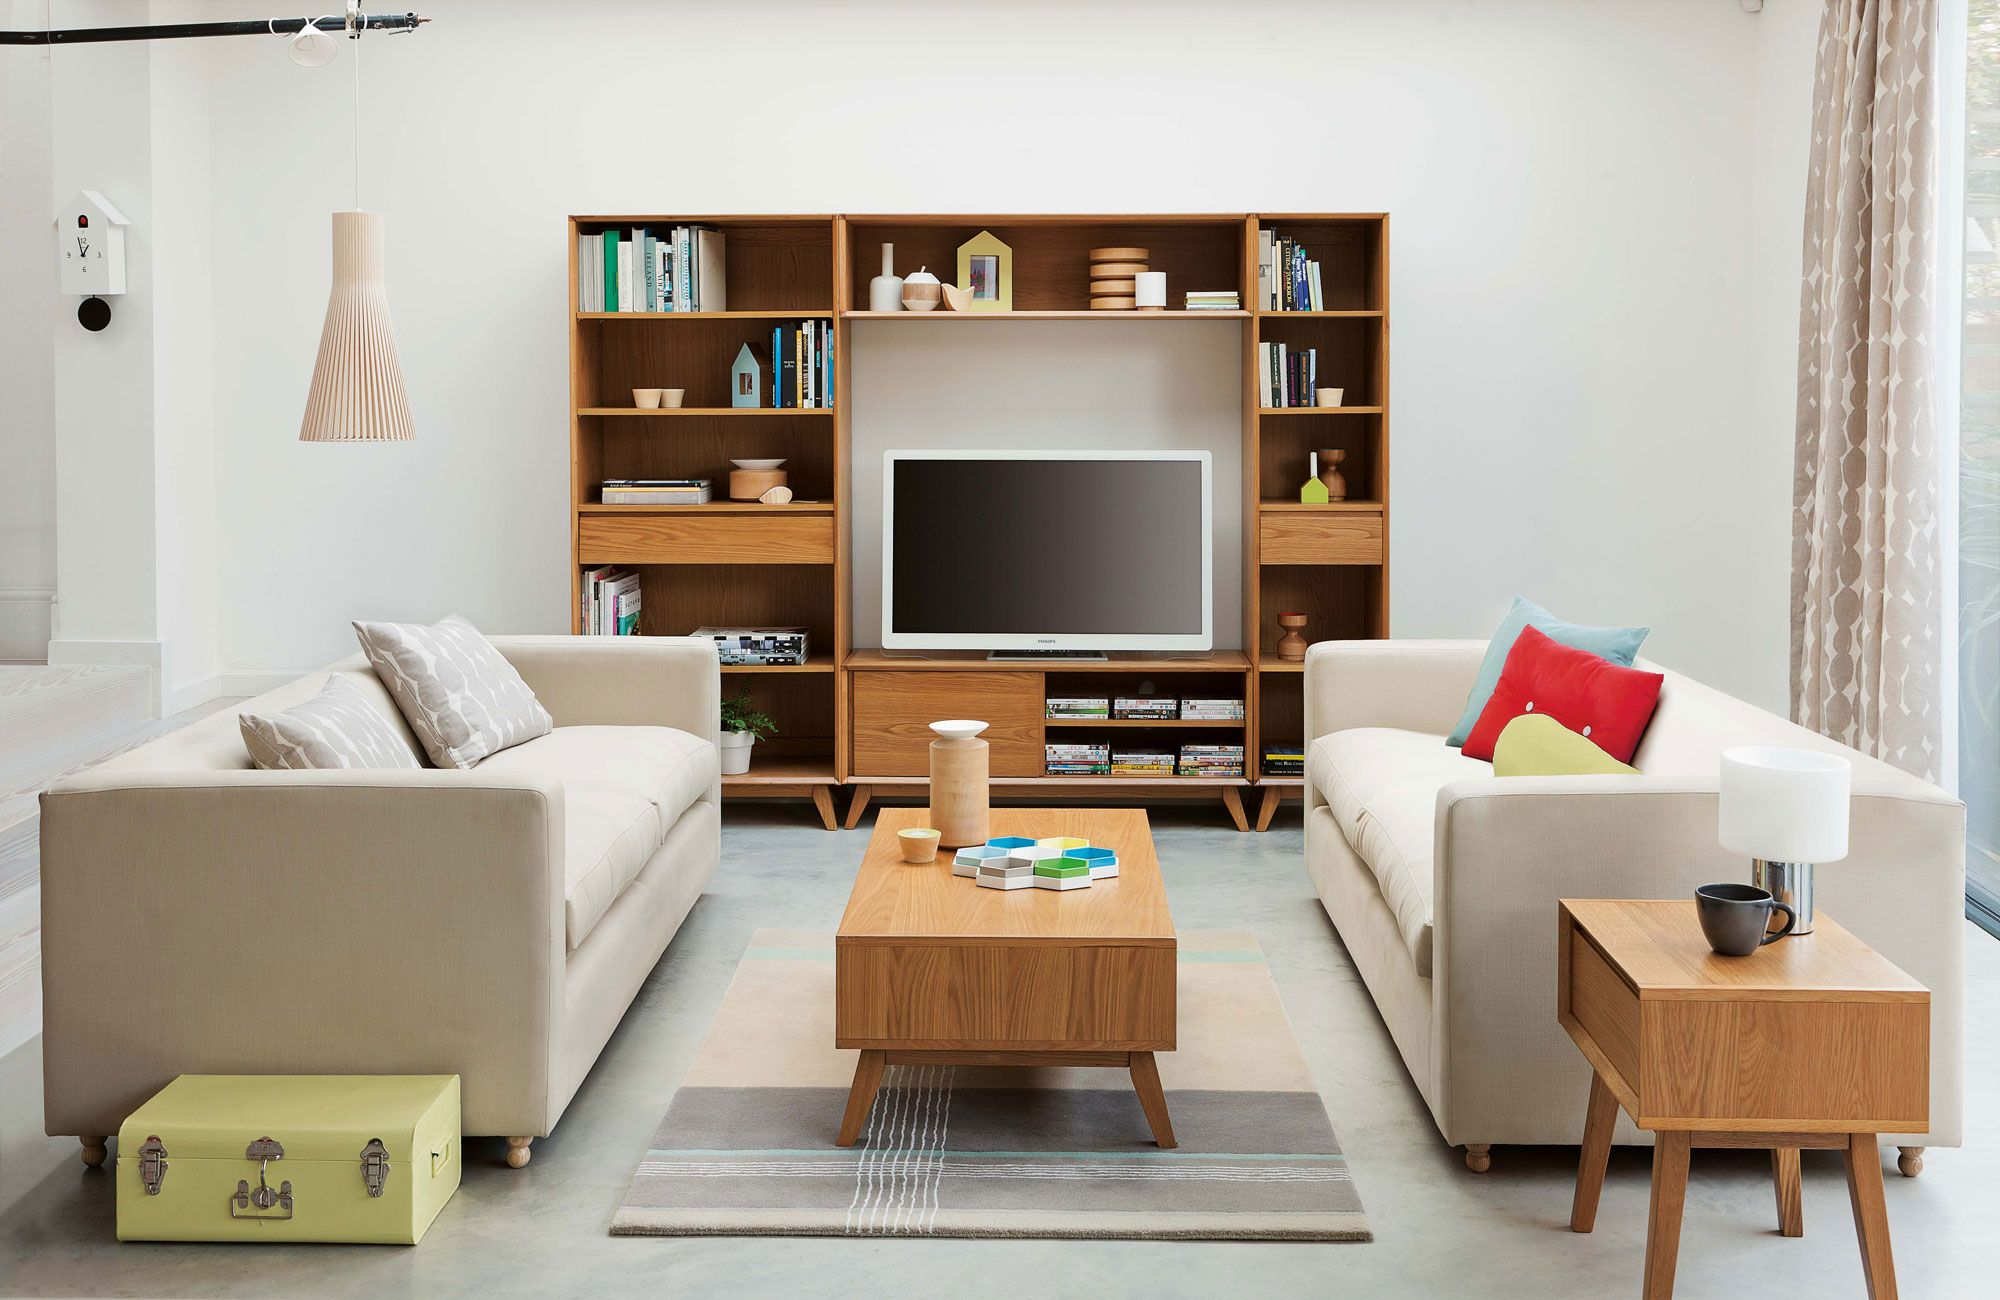 Gorgeous Ways To Incorporate Scandinavian Designs Into Your Home Rustic Living Room Scandinavian Interior Design Interior Design